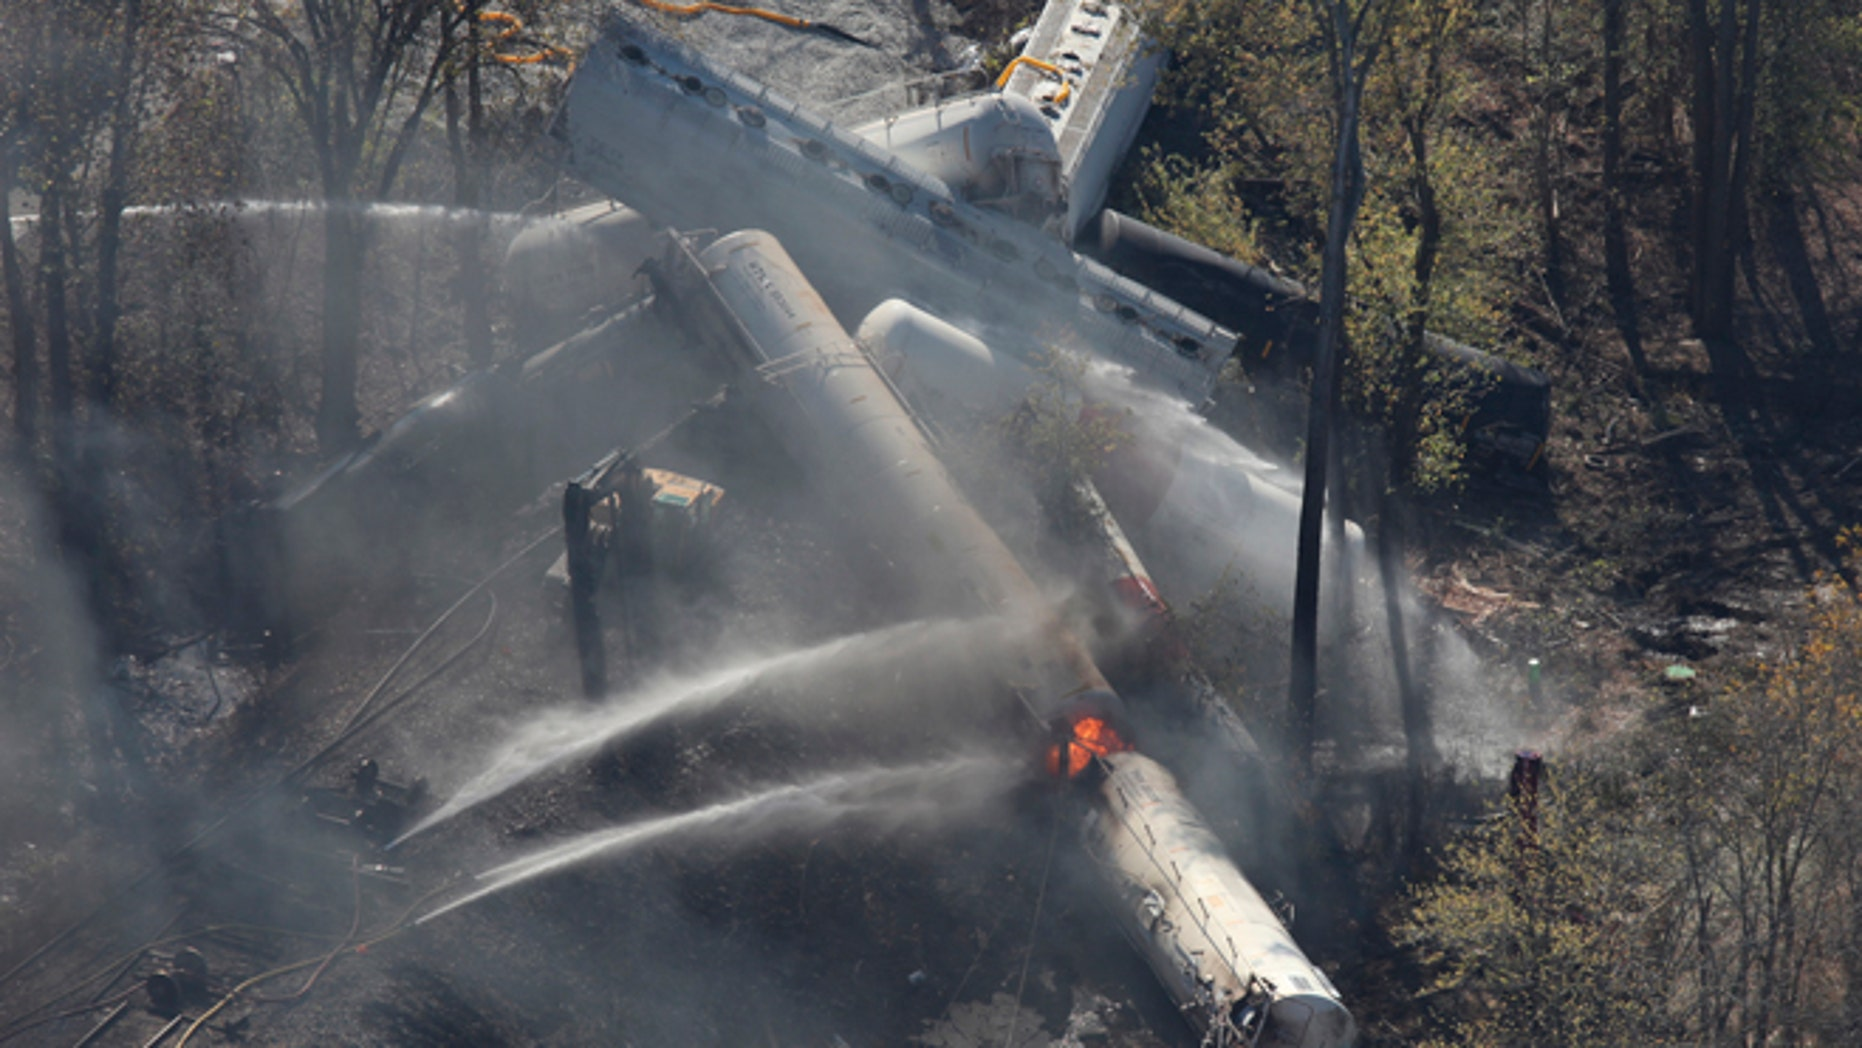 Oct. 31, 2012: Flames can be seen from the air after an explosion happened at the sight of a train derailment in southern Jefferson County, just south of Louisville, Ky.